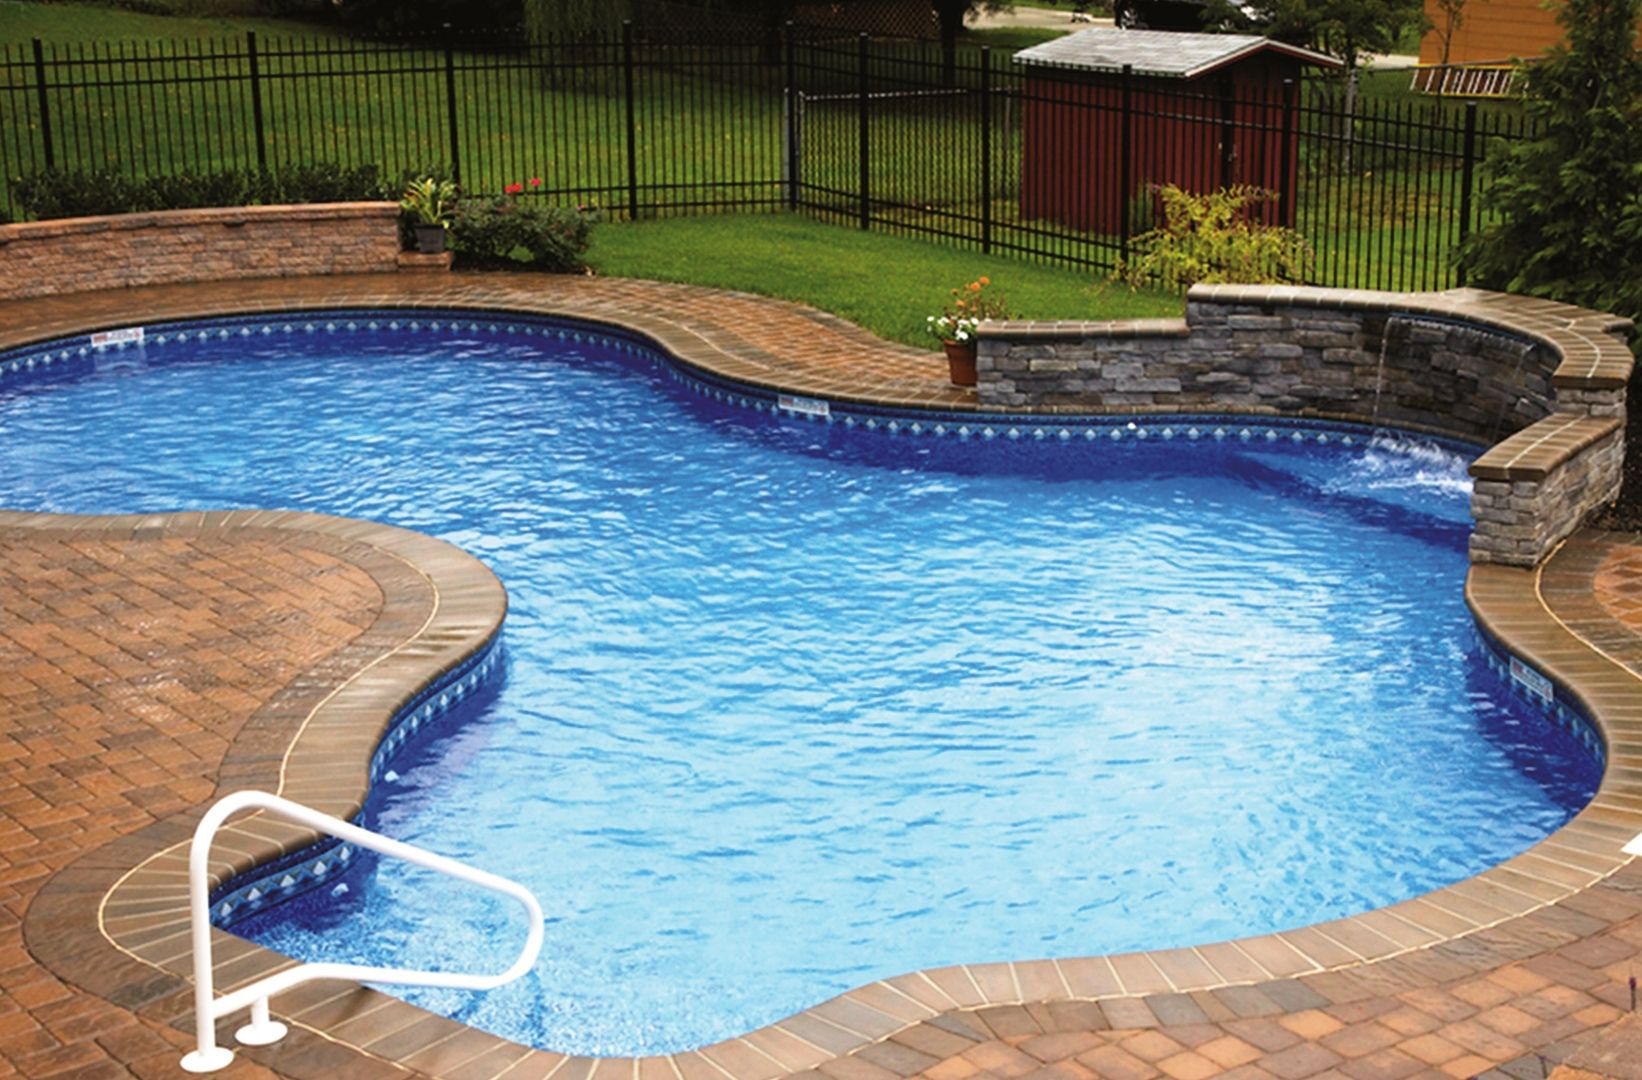 Back yard swimming pool ideas swimming pool design for Swimming pool ideas